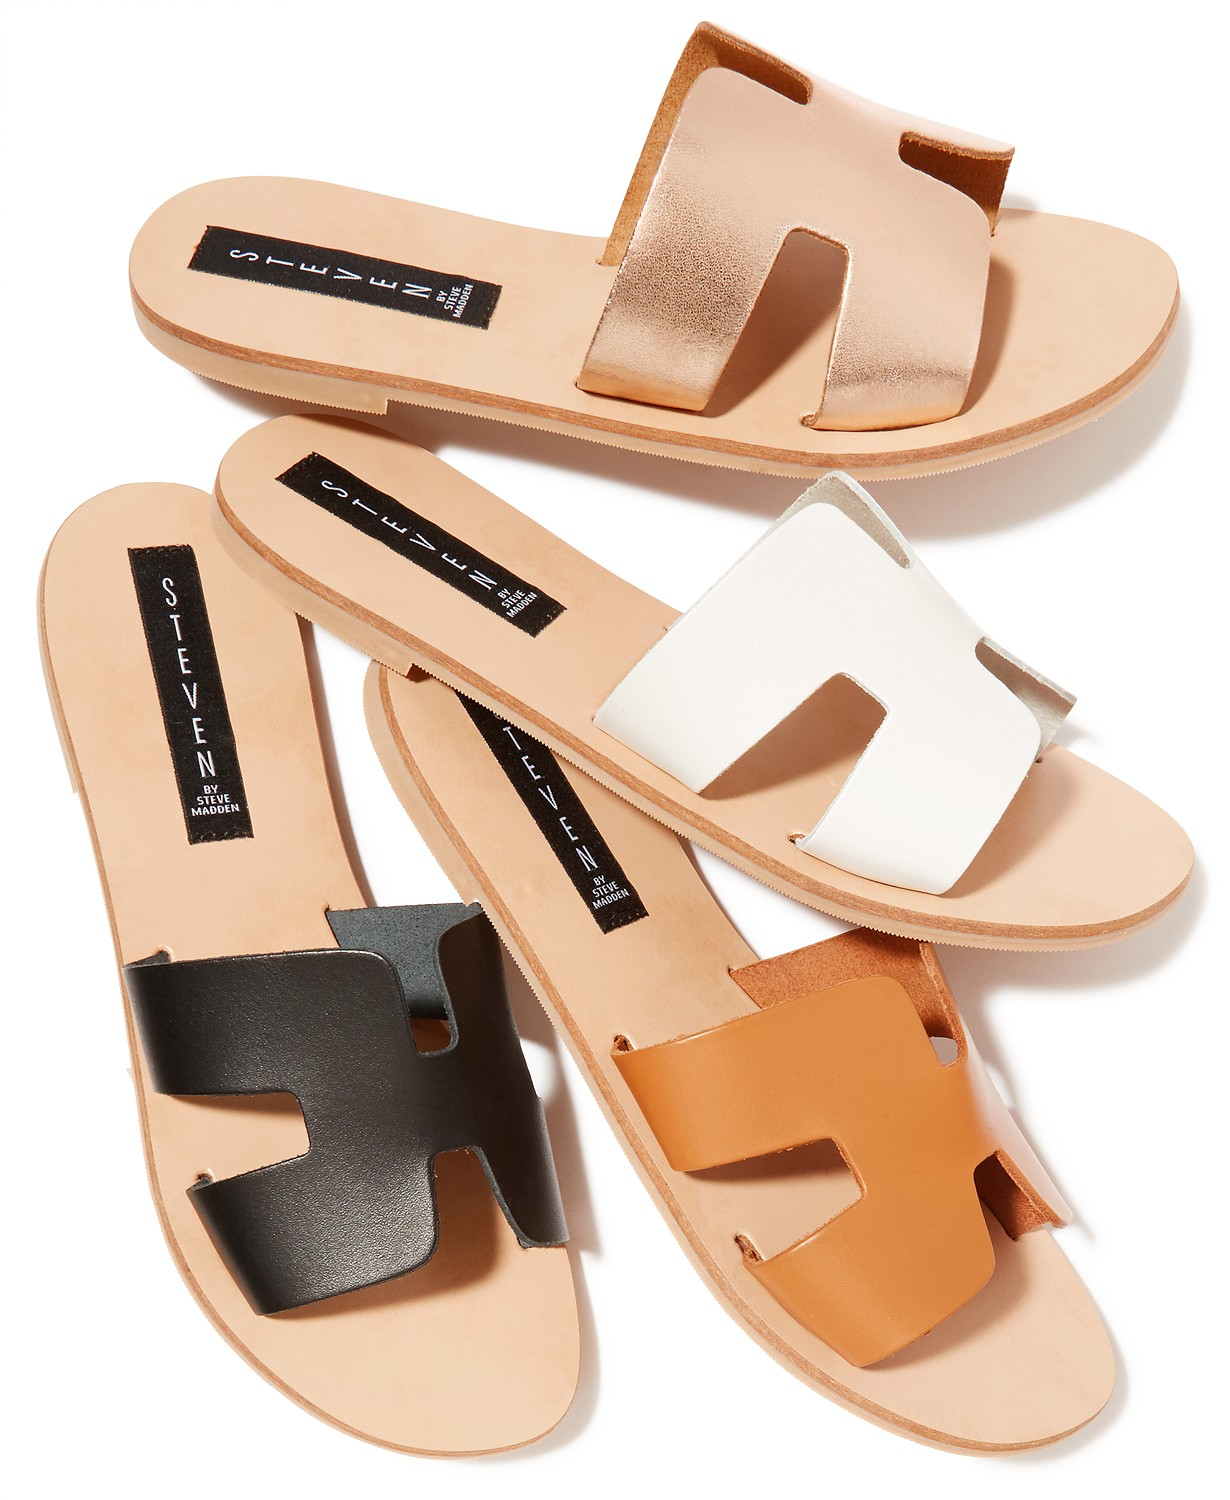 MACYS LIMITED TIME SPECIAL! WOMEN'S SHOES STARTING AT $24!